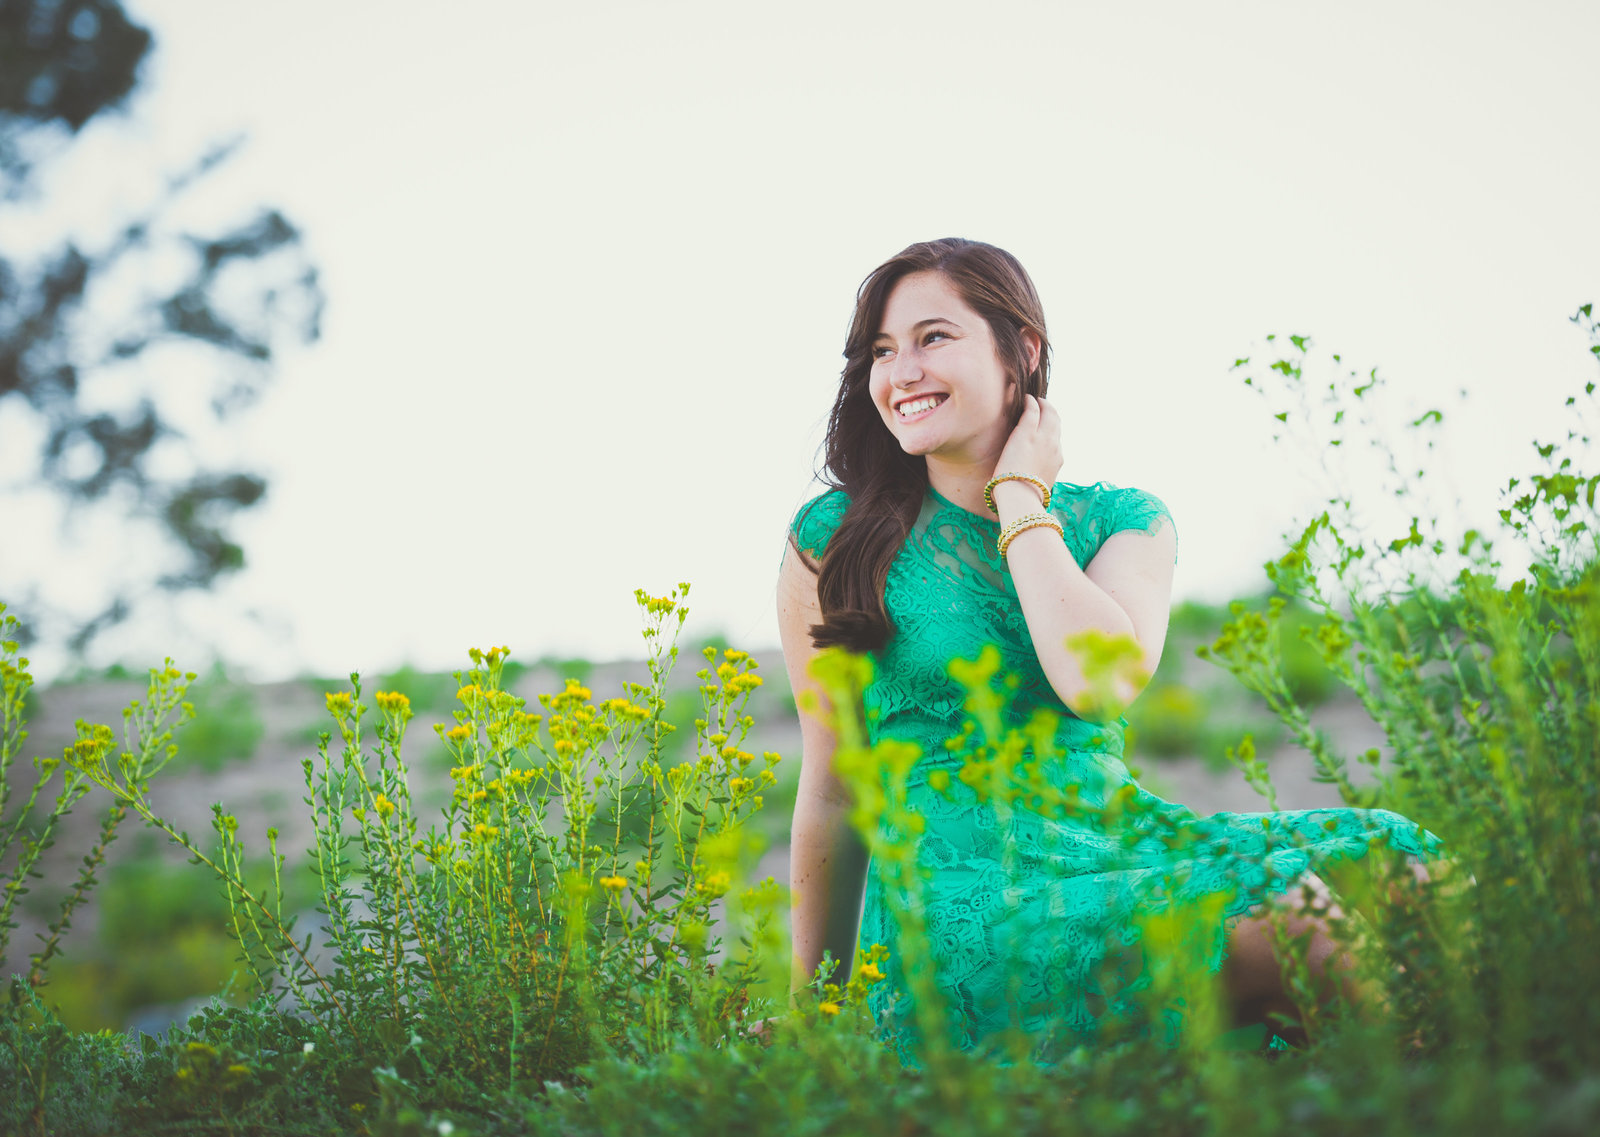 teen in green lace dress in field of flowers